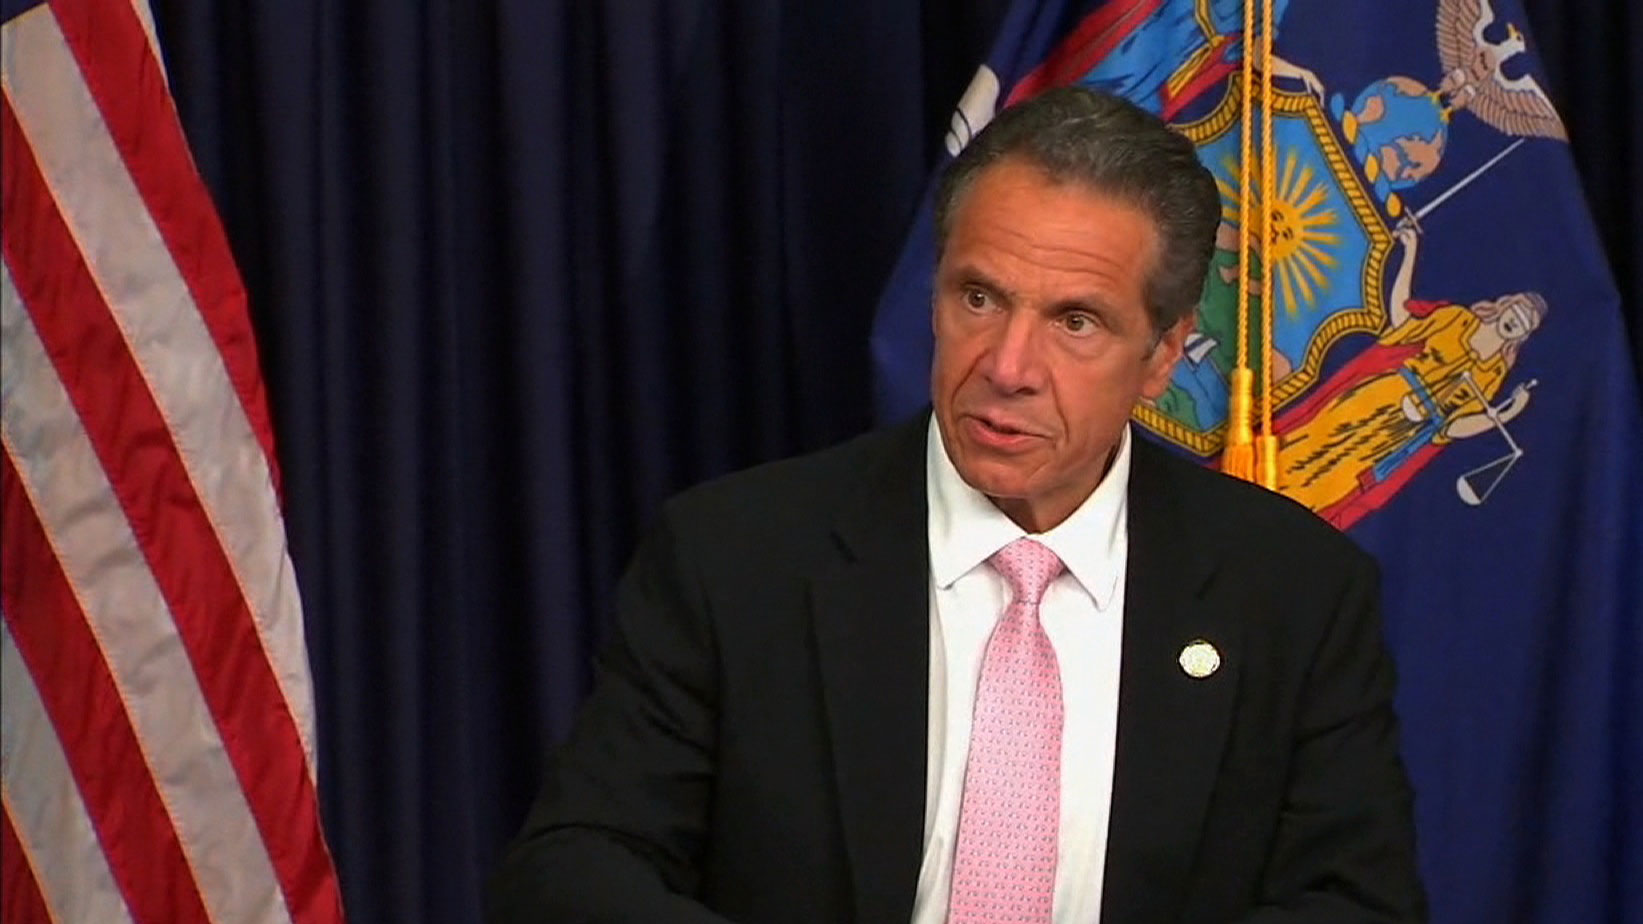 Gov. Andrew Cuomo speaks at a news conference on June 12 in New York.